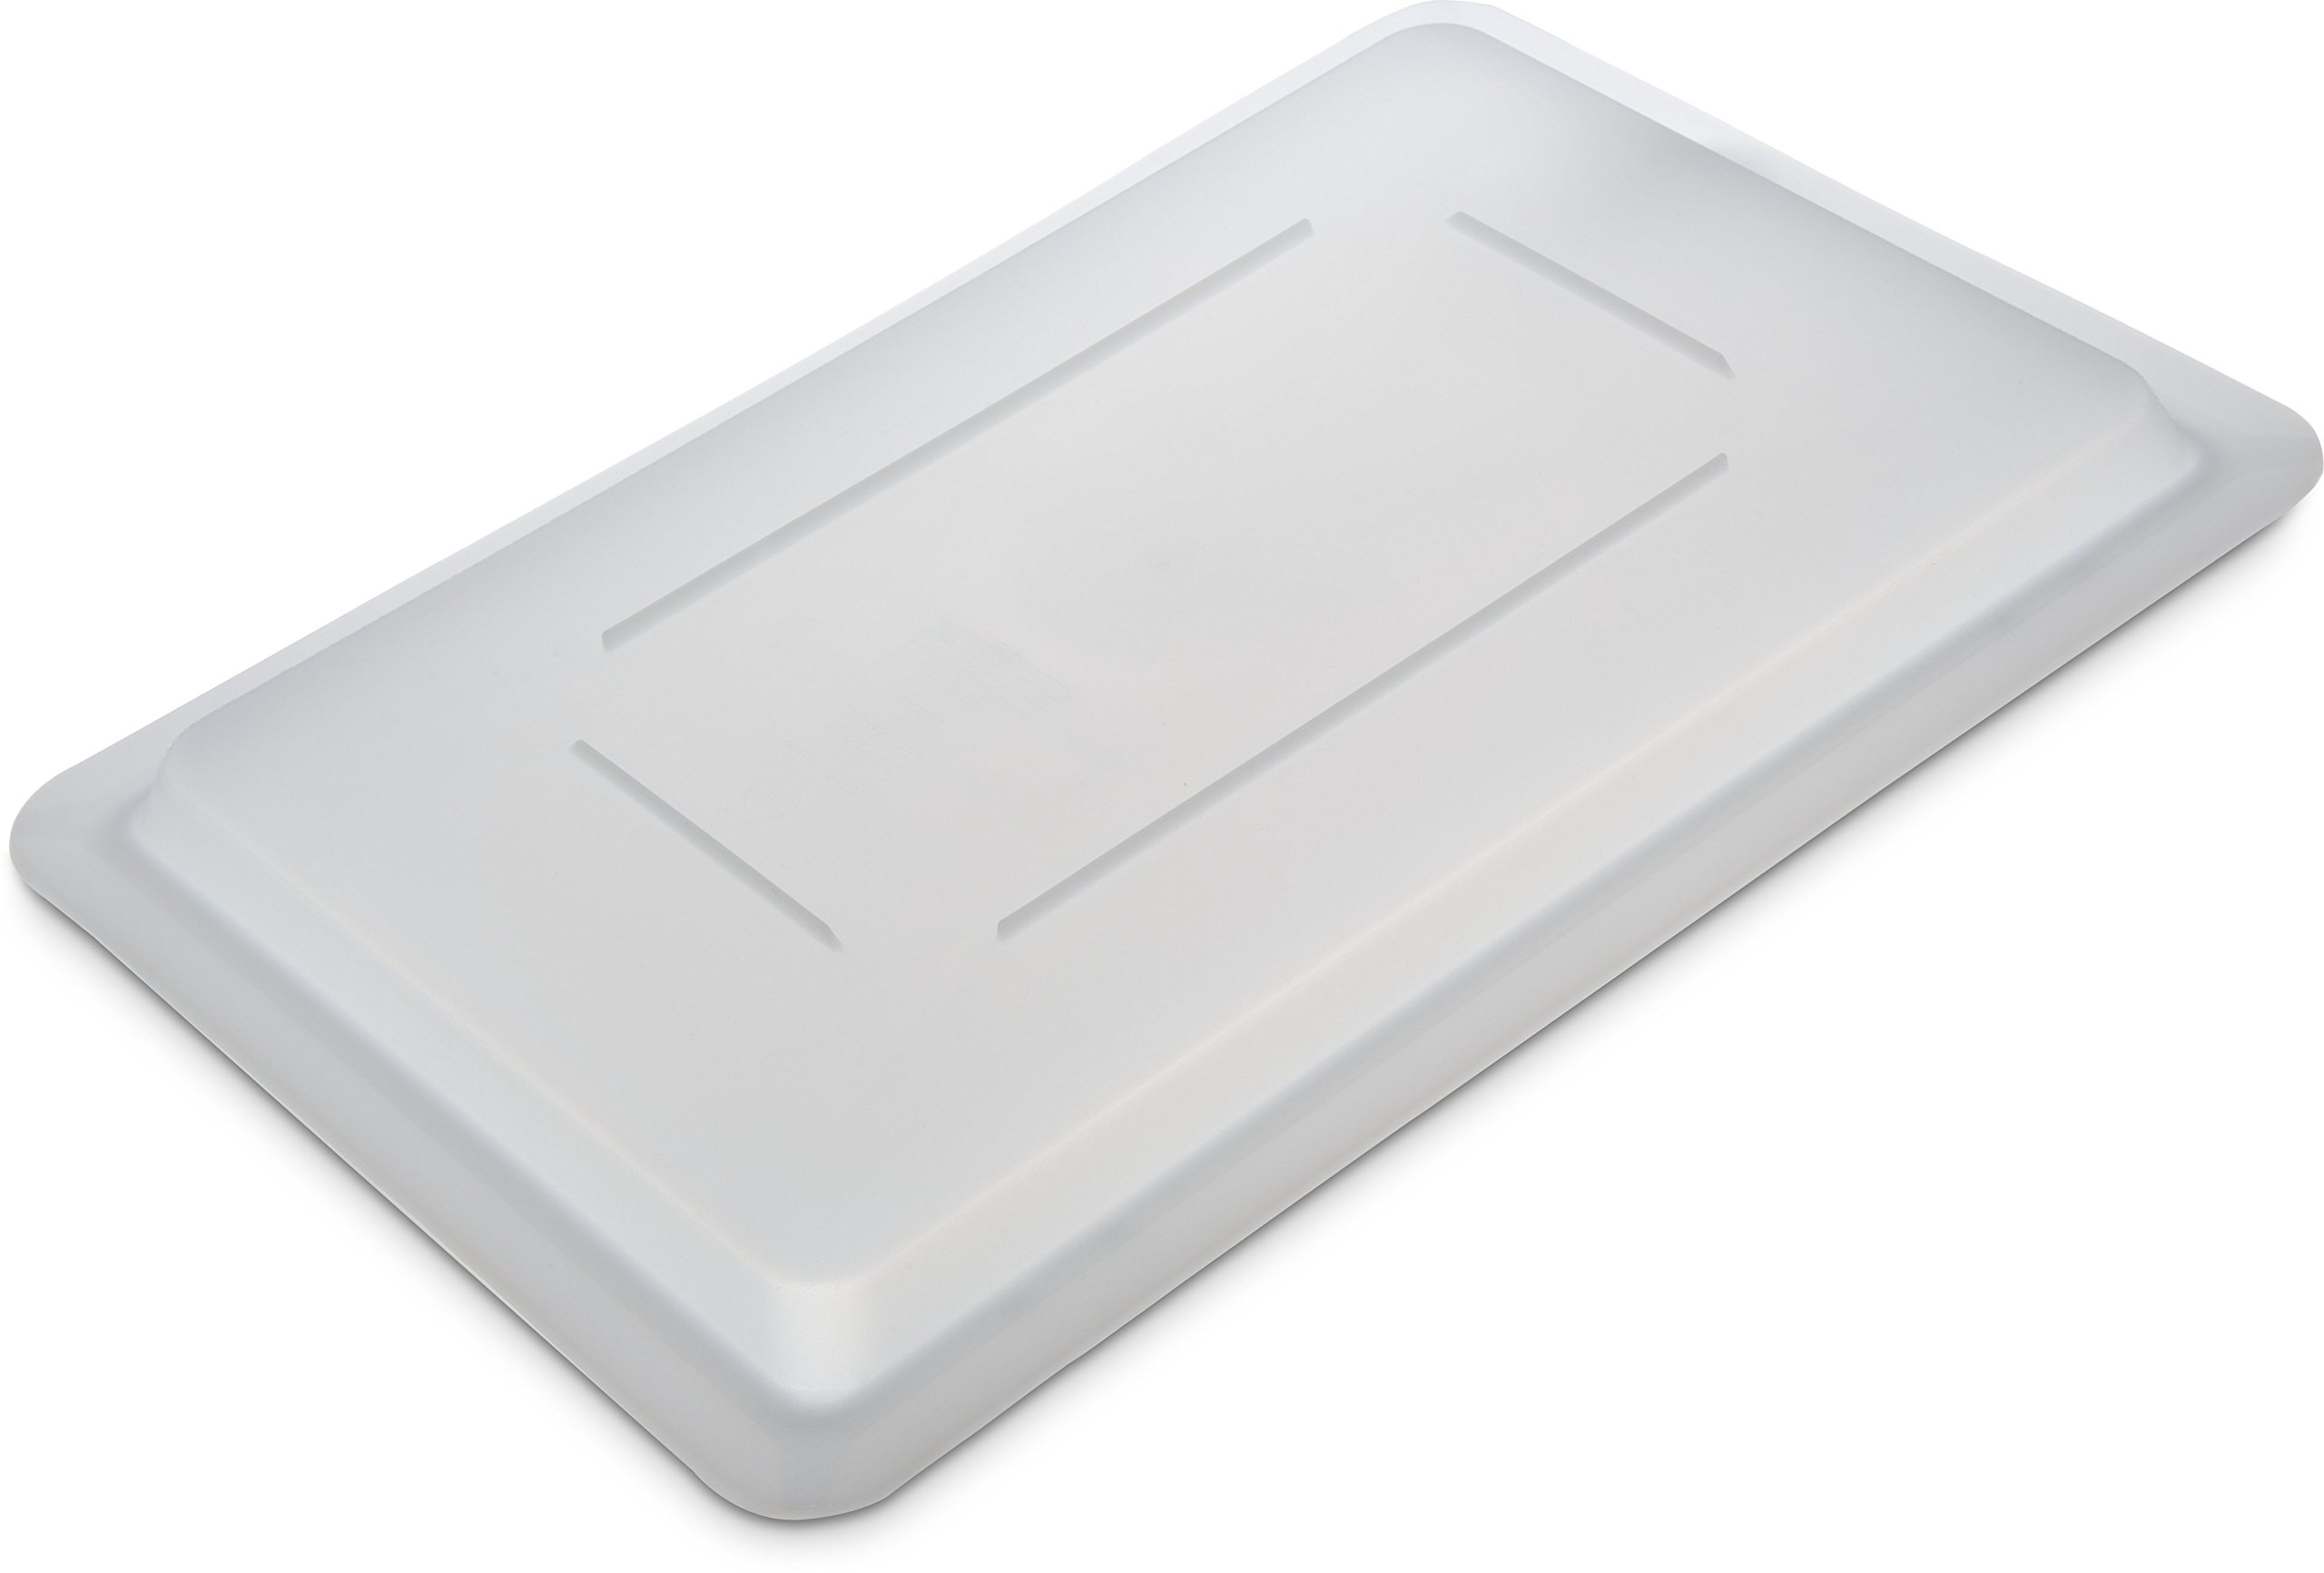 Carlisle 1063702 StorPlus Polyethylene Lock-Tight Lid, 18 x 12 x 1.28'', White, For StorPlus Food box (Case of 6) by Carlisle